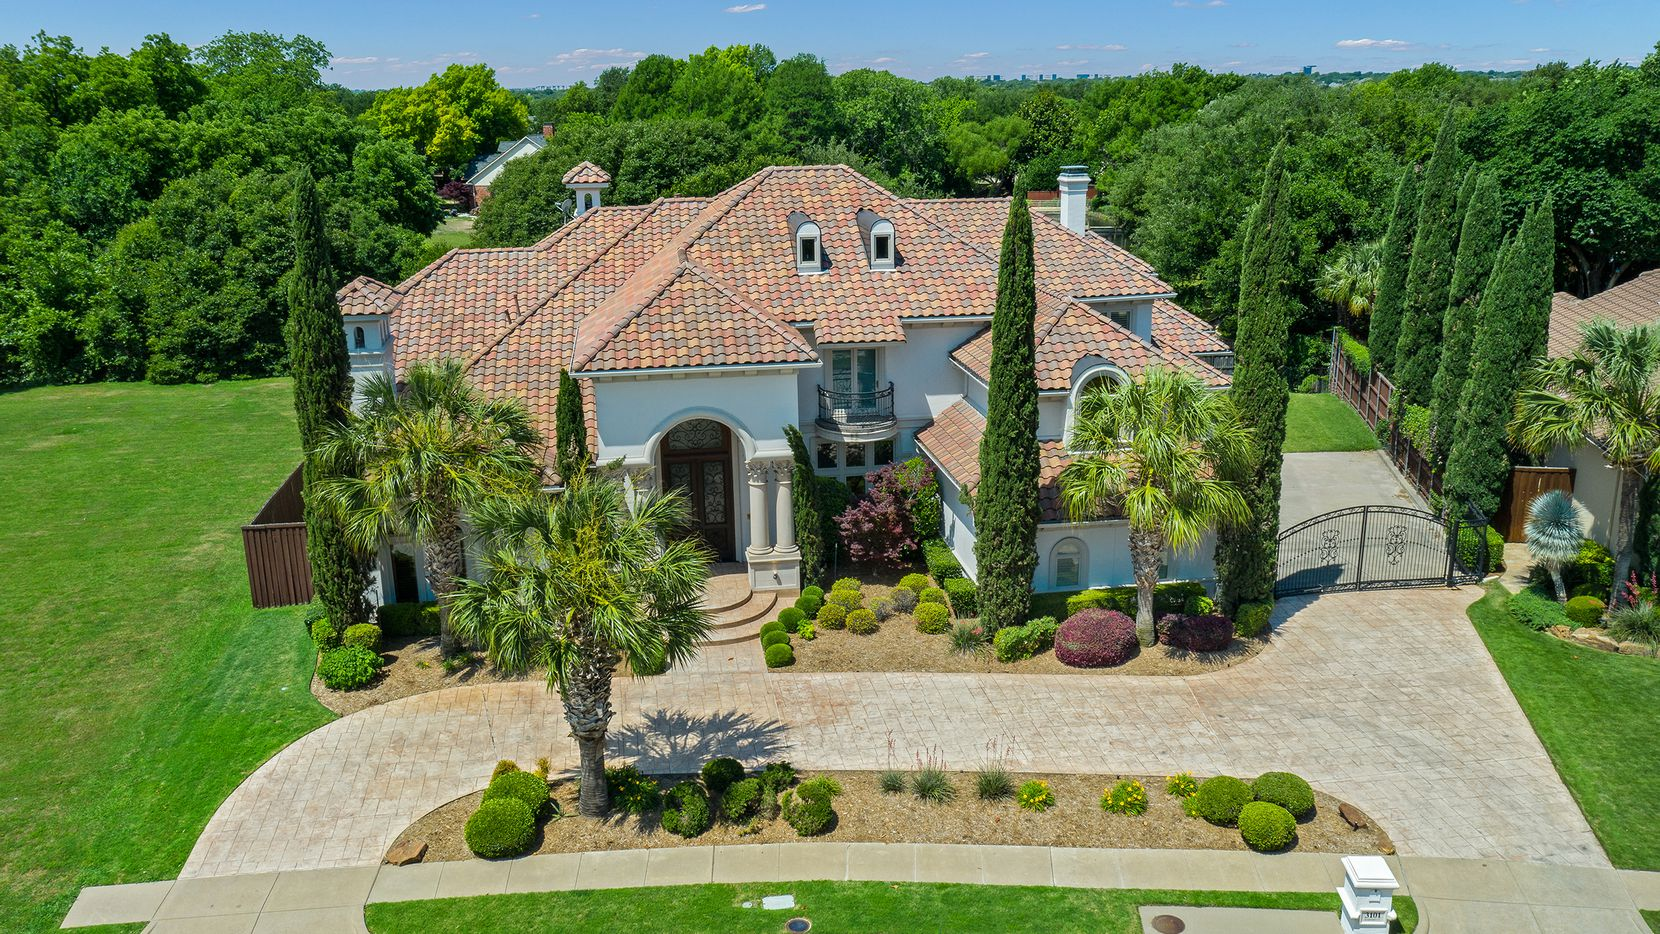 The Mediterranean-style estate home with lake views at 3101 Harvard Court in Plano is offered at $1,895,000.